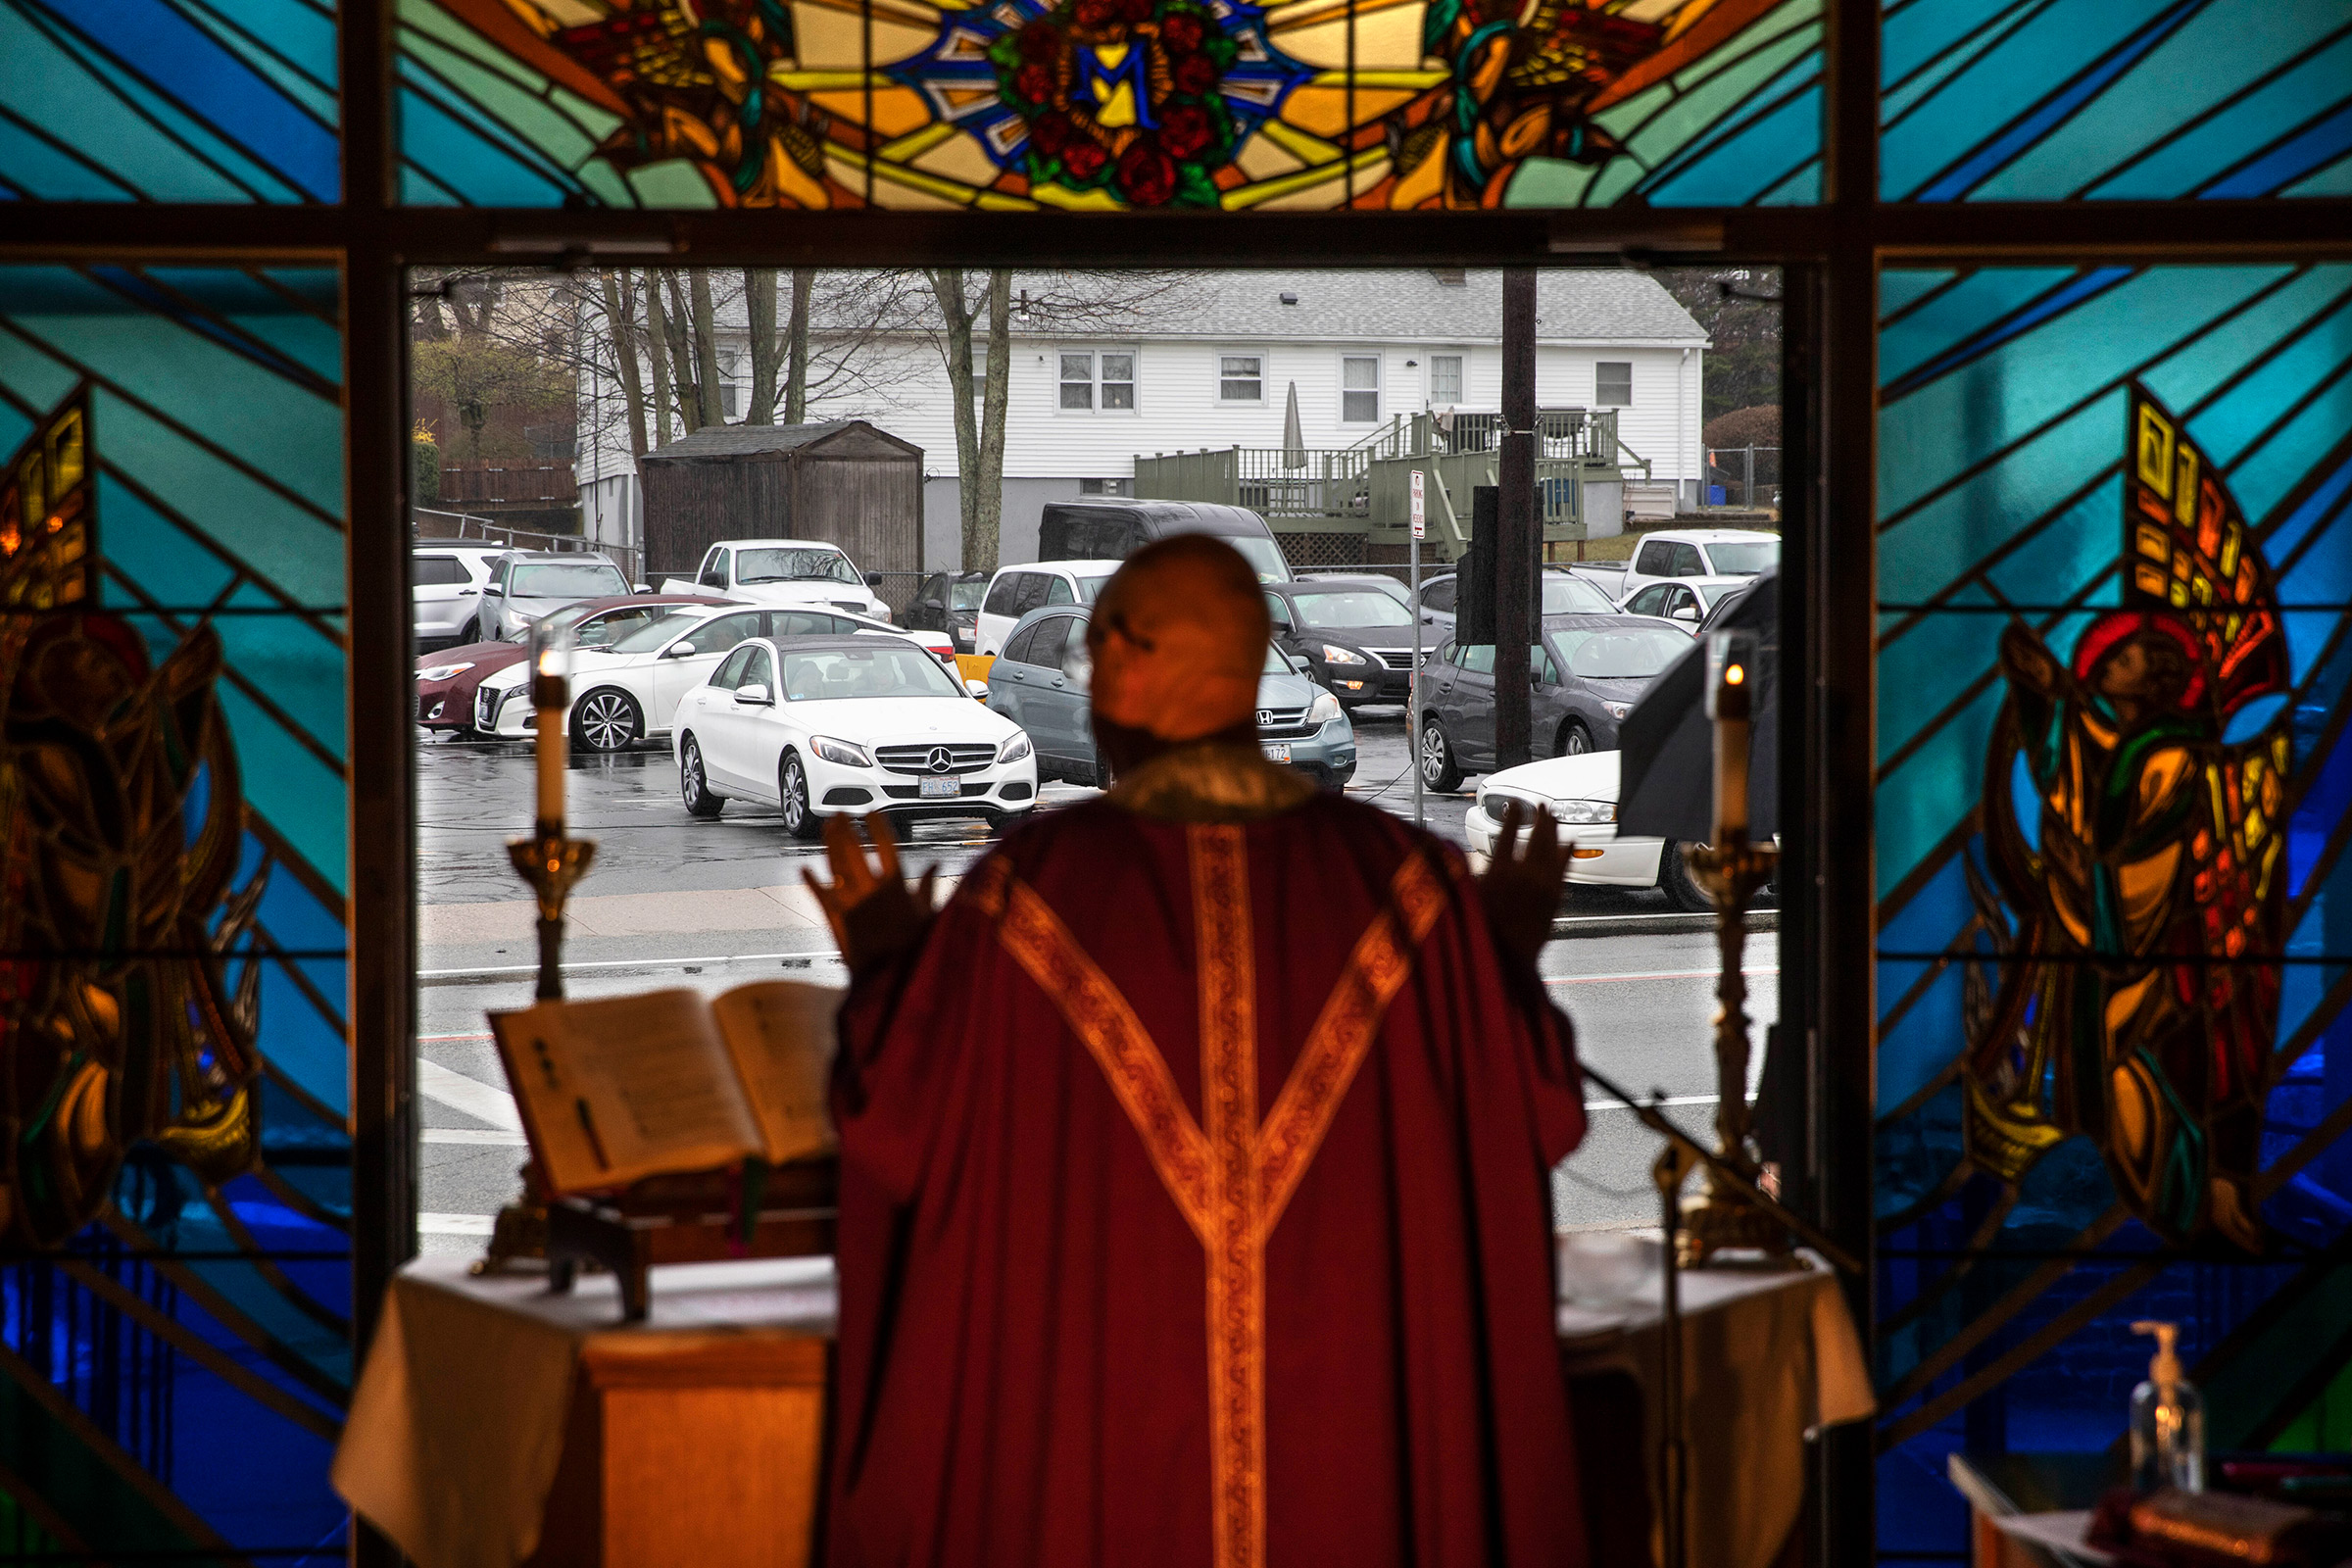 Rev. Peter Gower celebrates Mass from the front door of Our Lady of Grace Catholic Church as worshippers listen over the radio from their cars in the parking lot, Sunday, March 29, in Johnston, R.I.